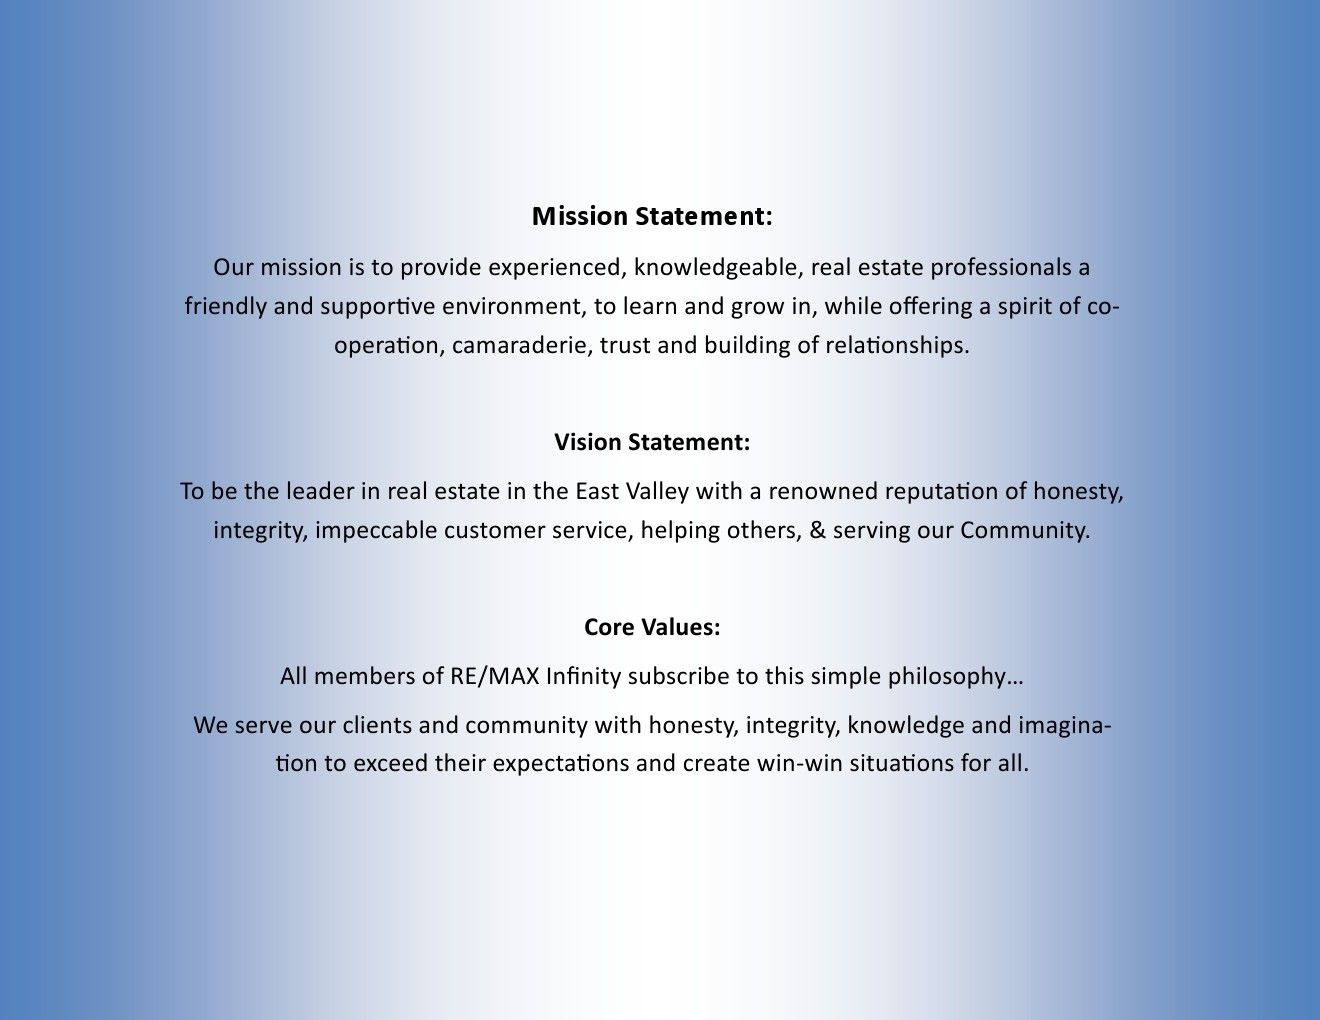 RE/MAX Infinity's Mission Statement, Vision Statement and